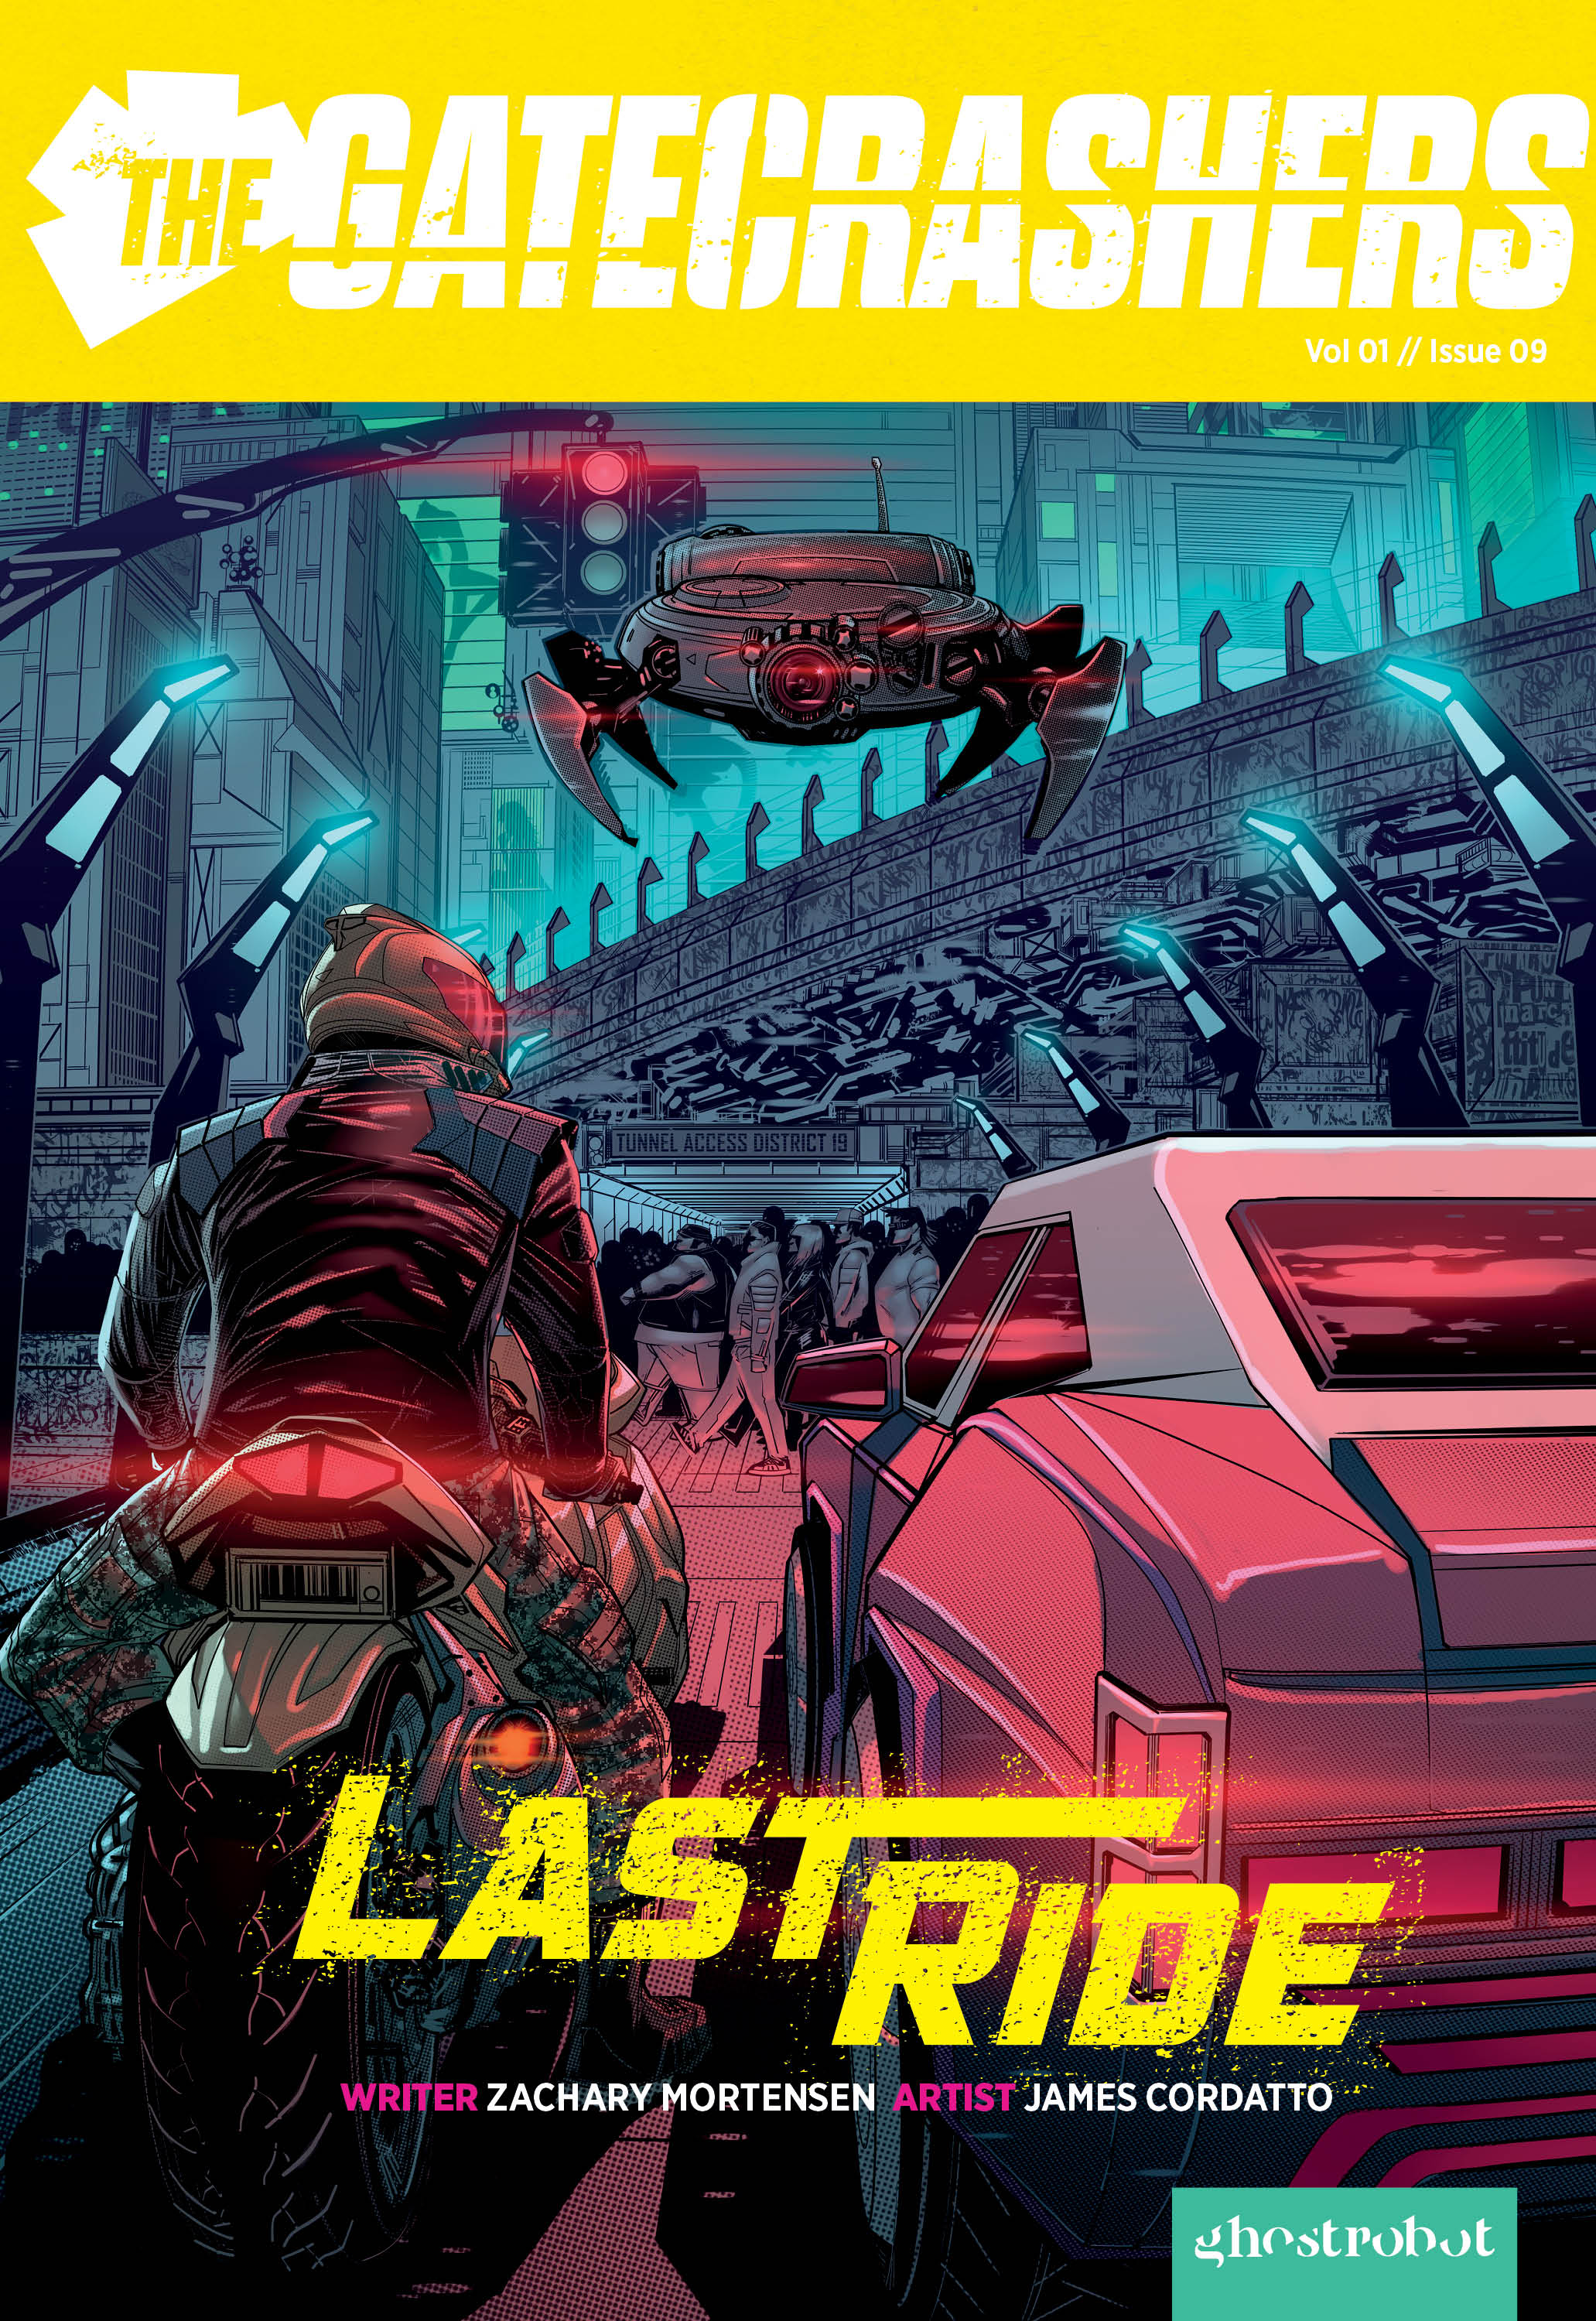 The Gatecrashers Issue 09 Last Ride Cover